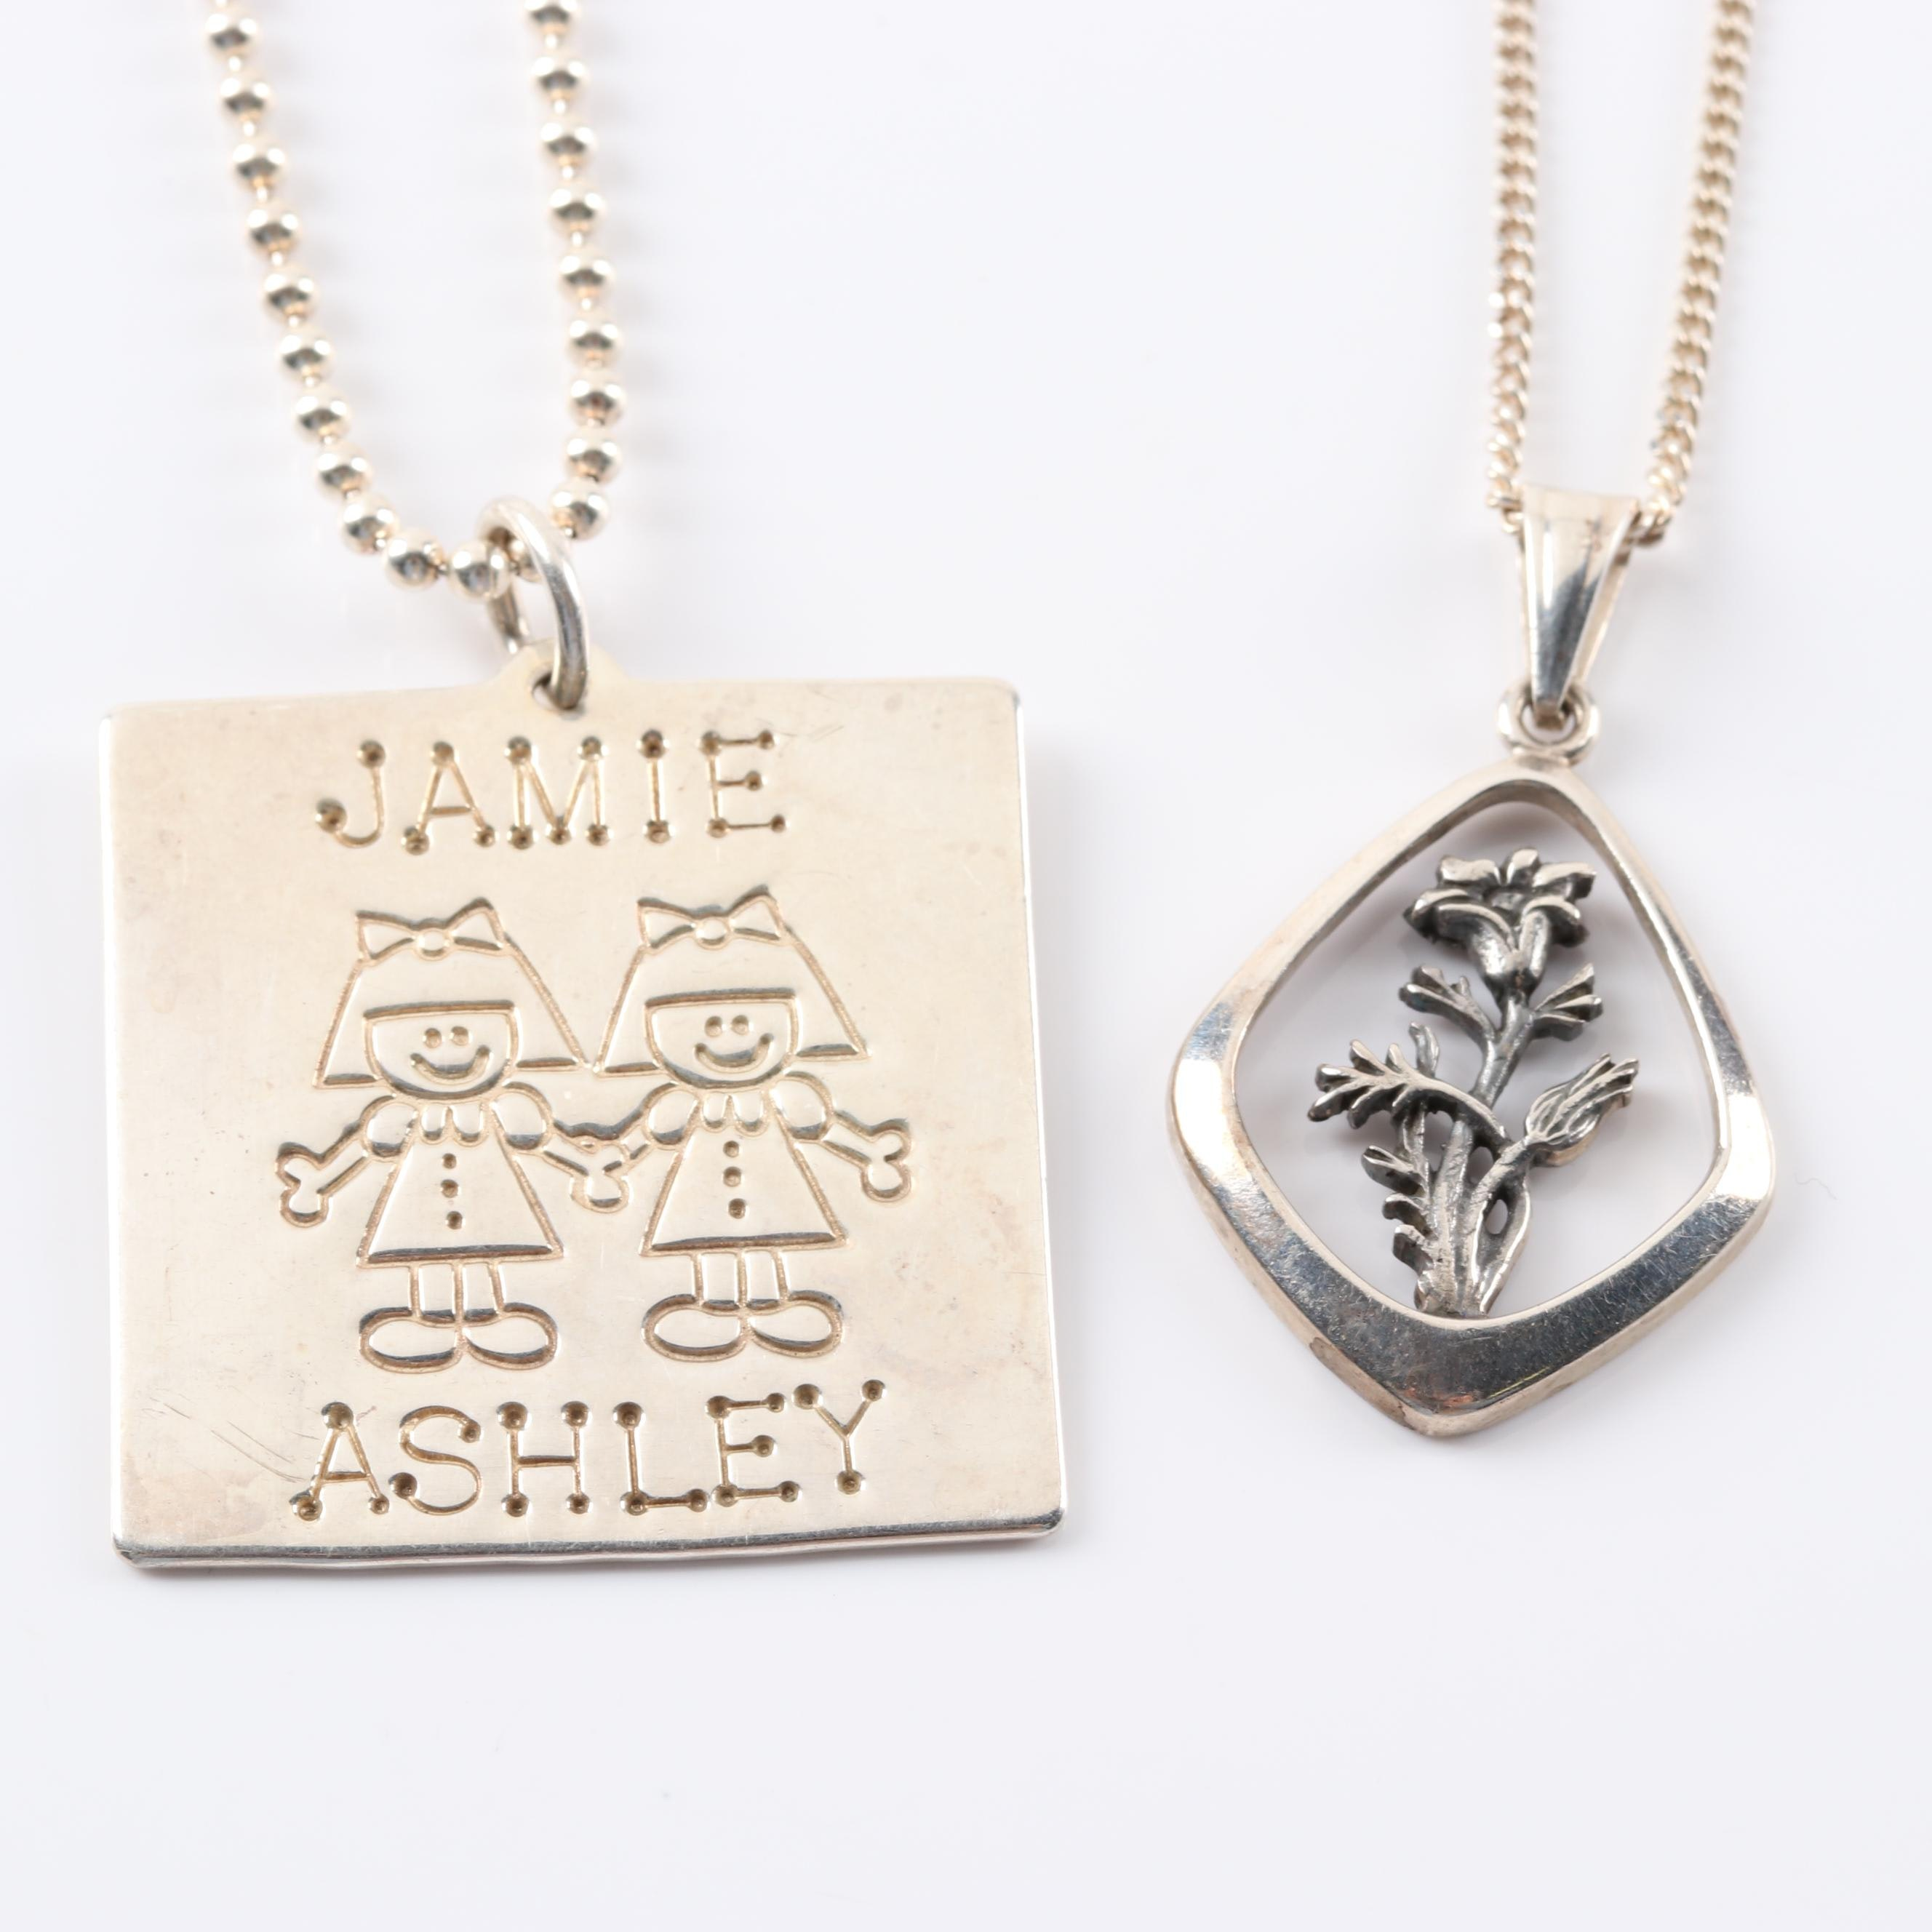 Sterling Silver Lucy Ann Elements Charm and Alton Flower Pendant Necklaces